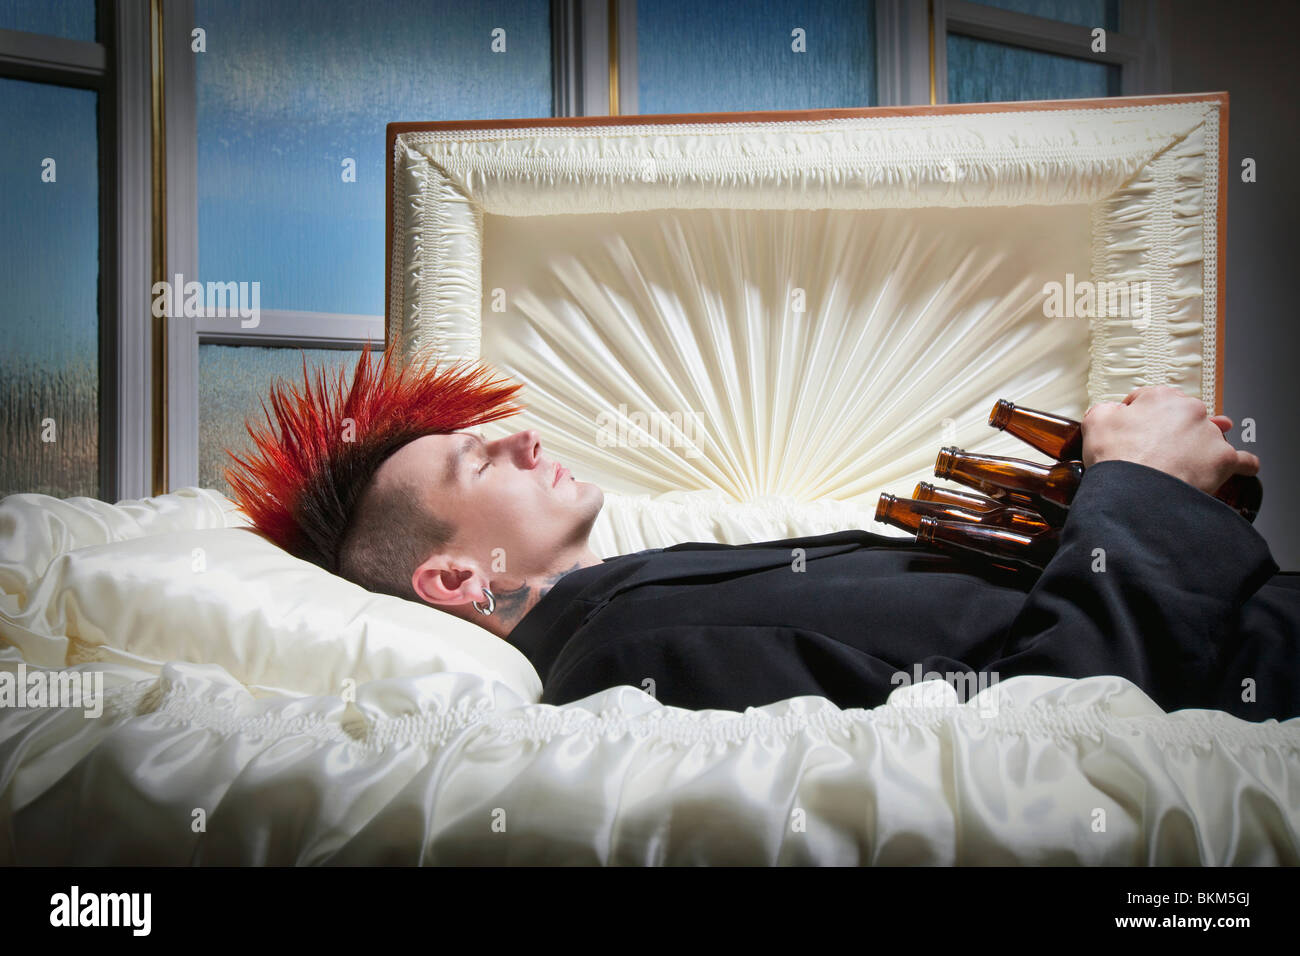 a deceased young man in a coffin holding beer bottles